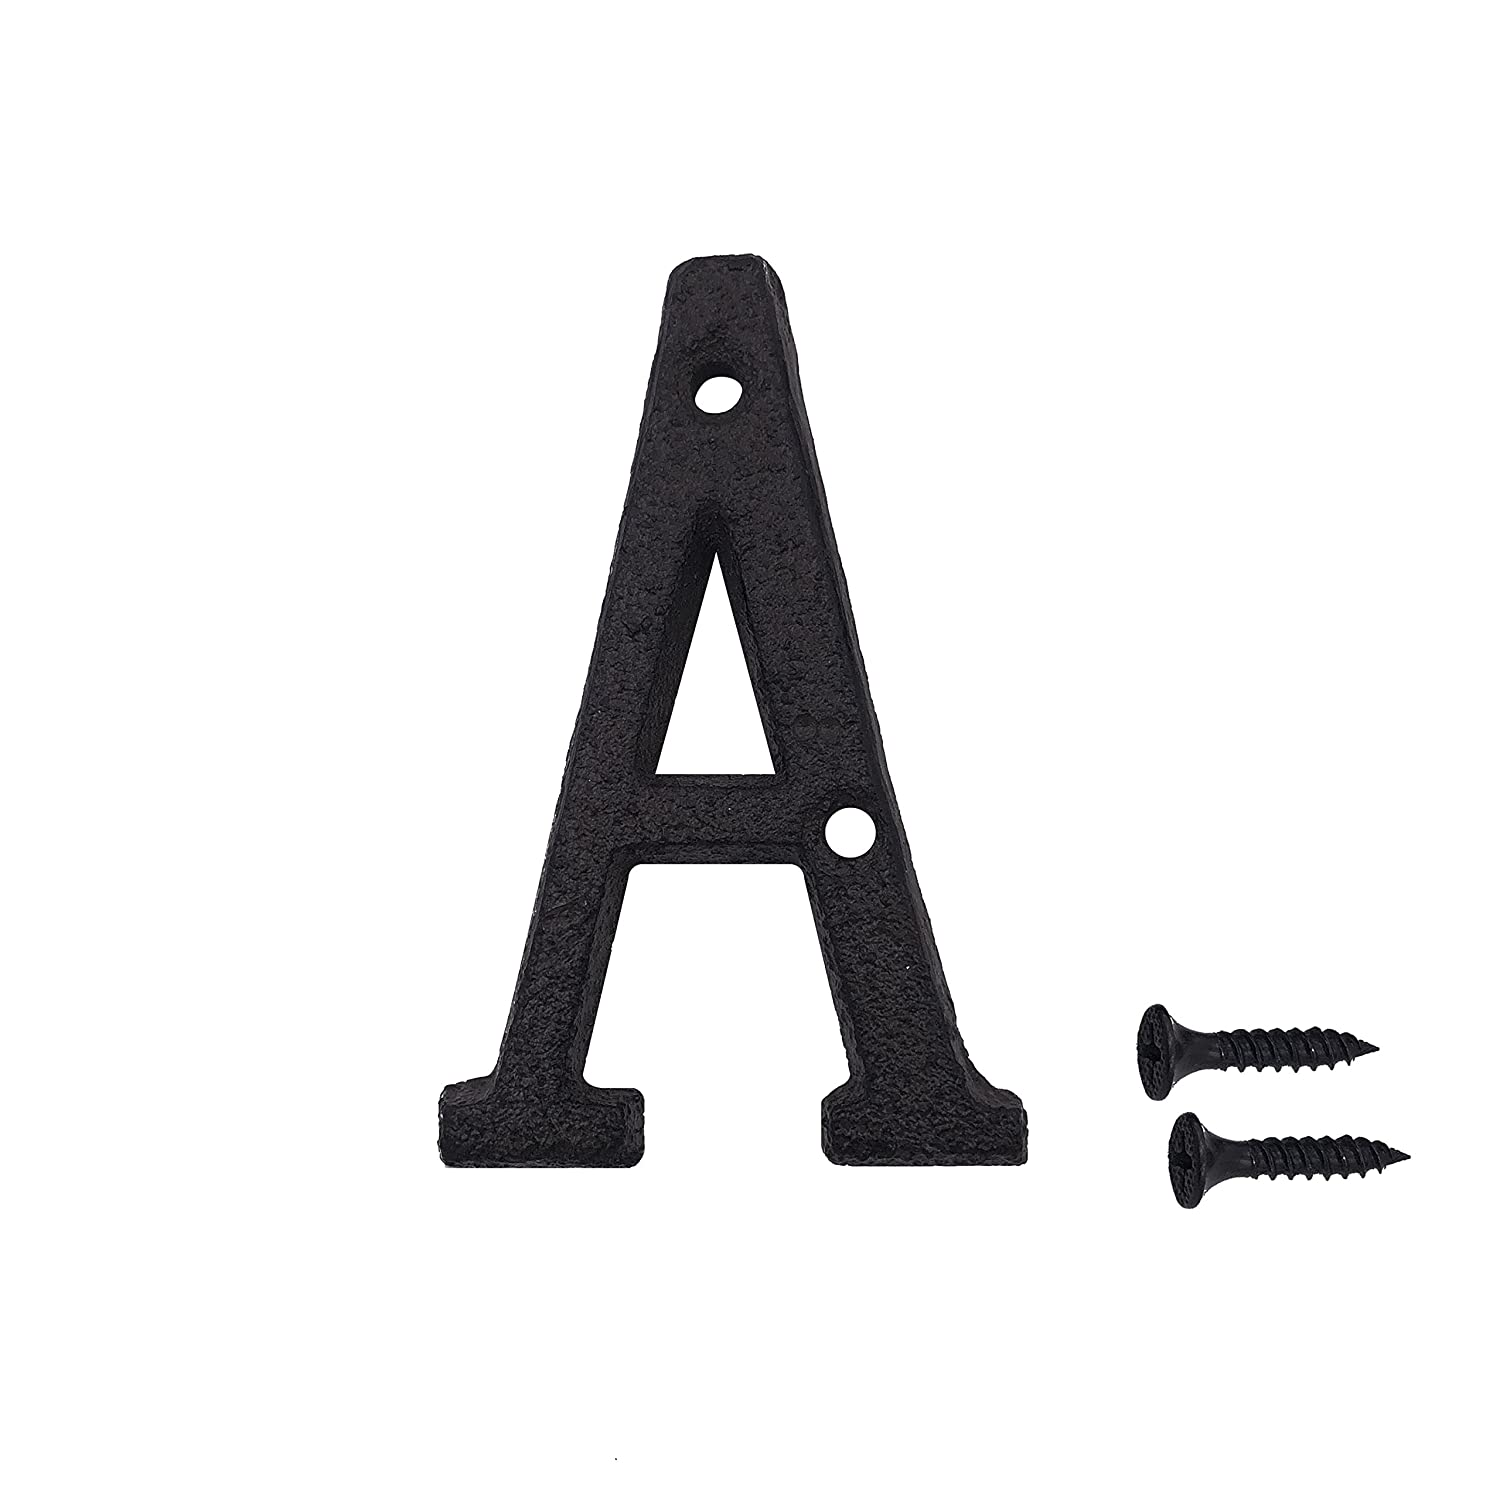 3 Inch Wrought Iron House Number, Matching Screws Included Black Number 4 TripDock TD-HOUSE070605